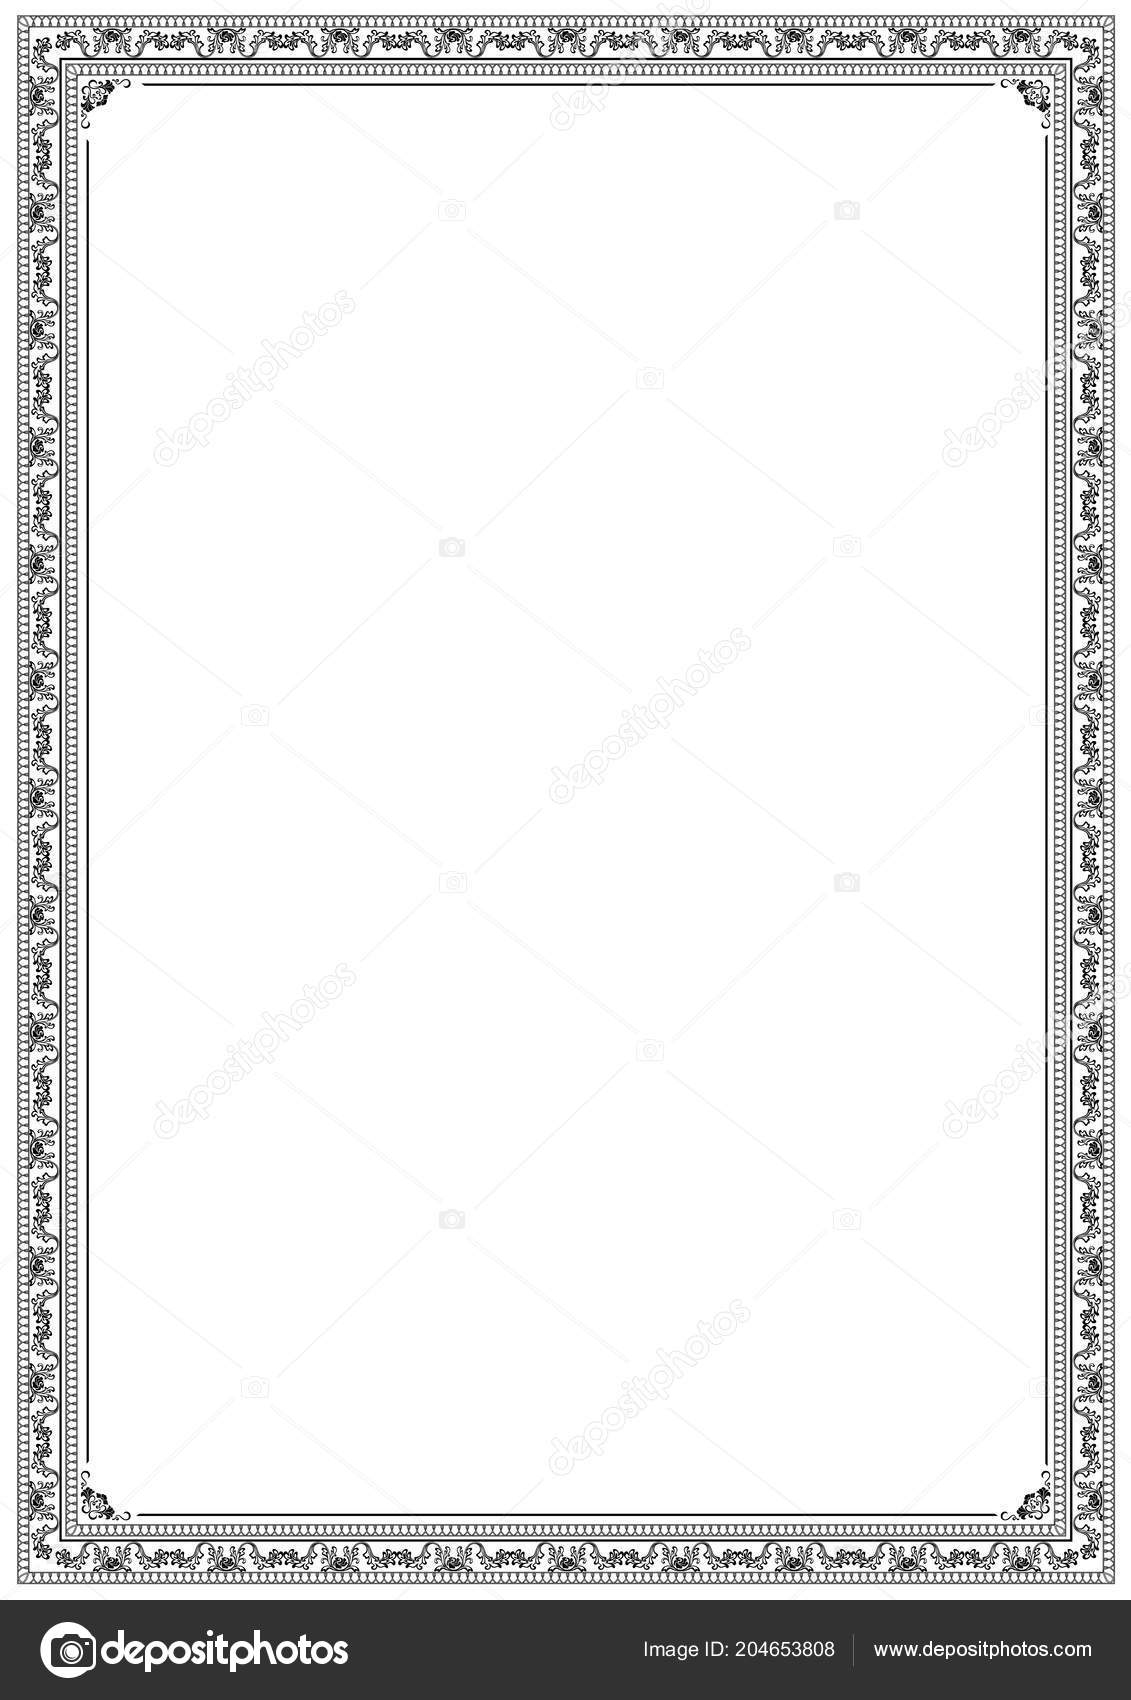 graphic relating to Picture Frame Printable titled Printable frames and borders Body Border Style and design Template